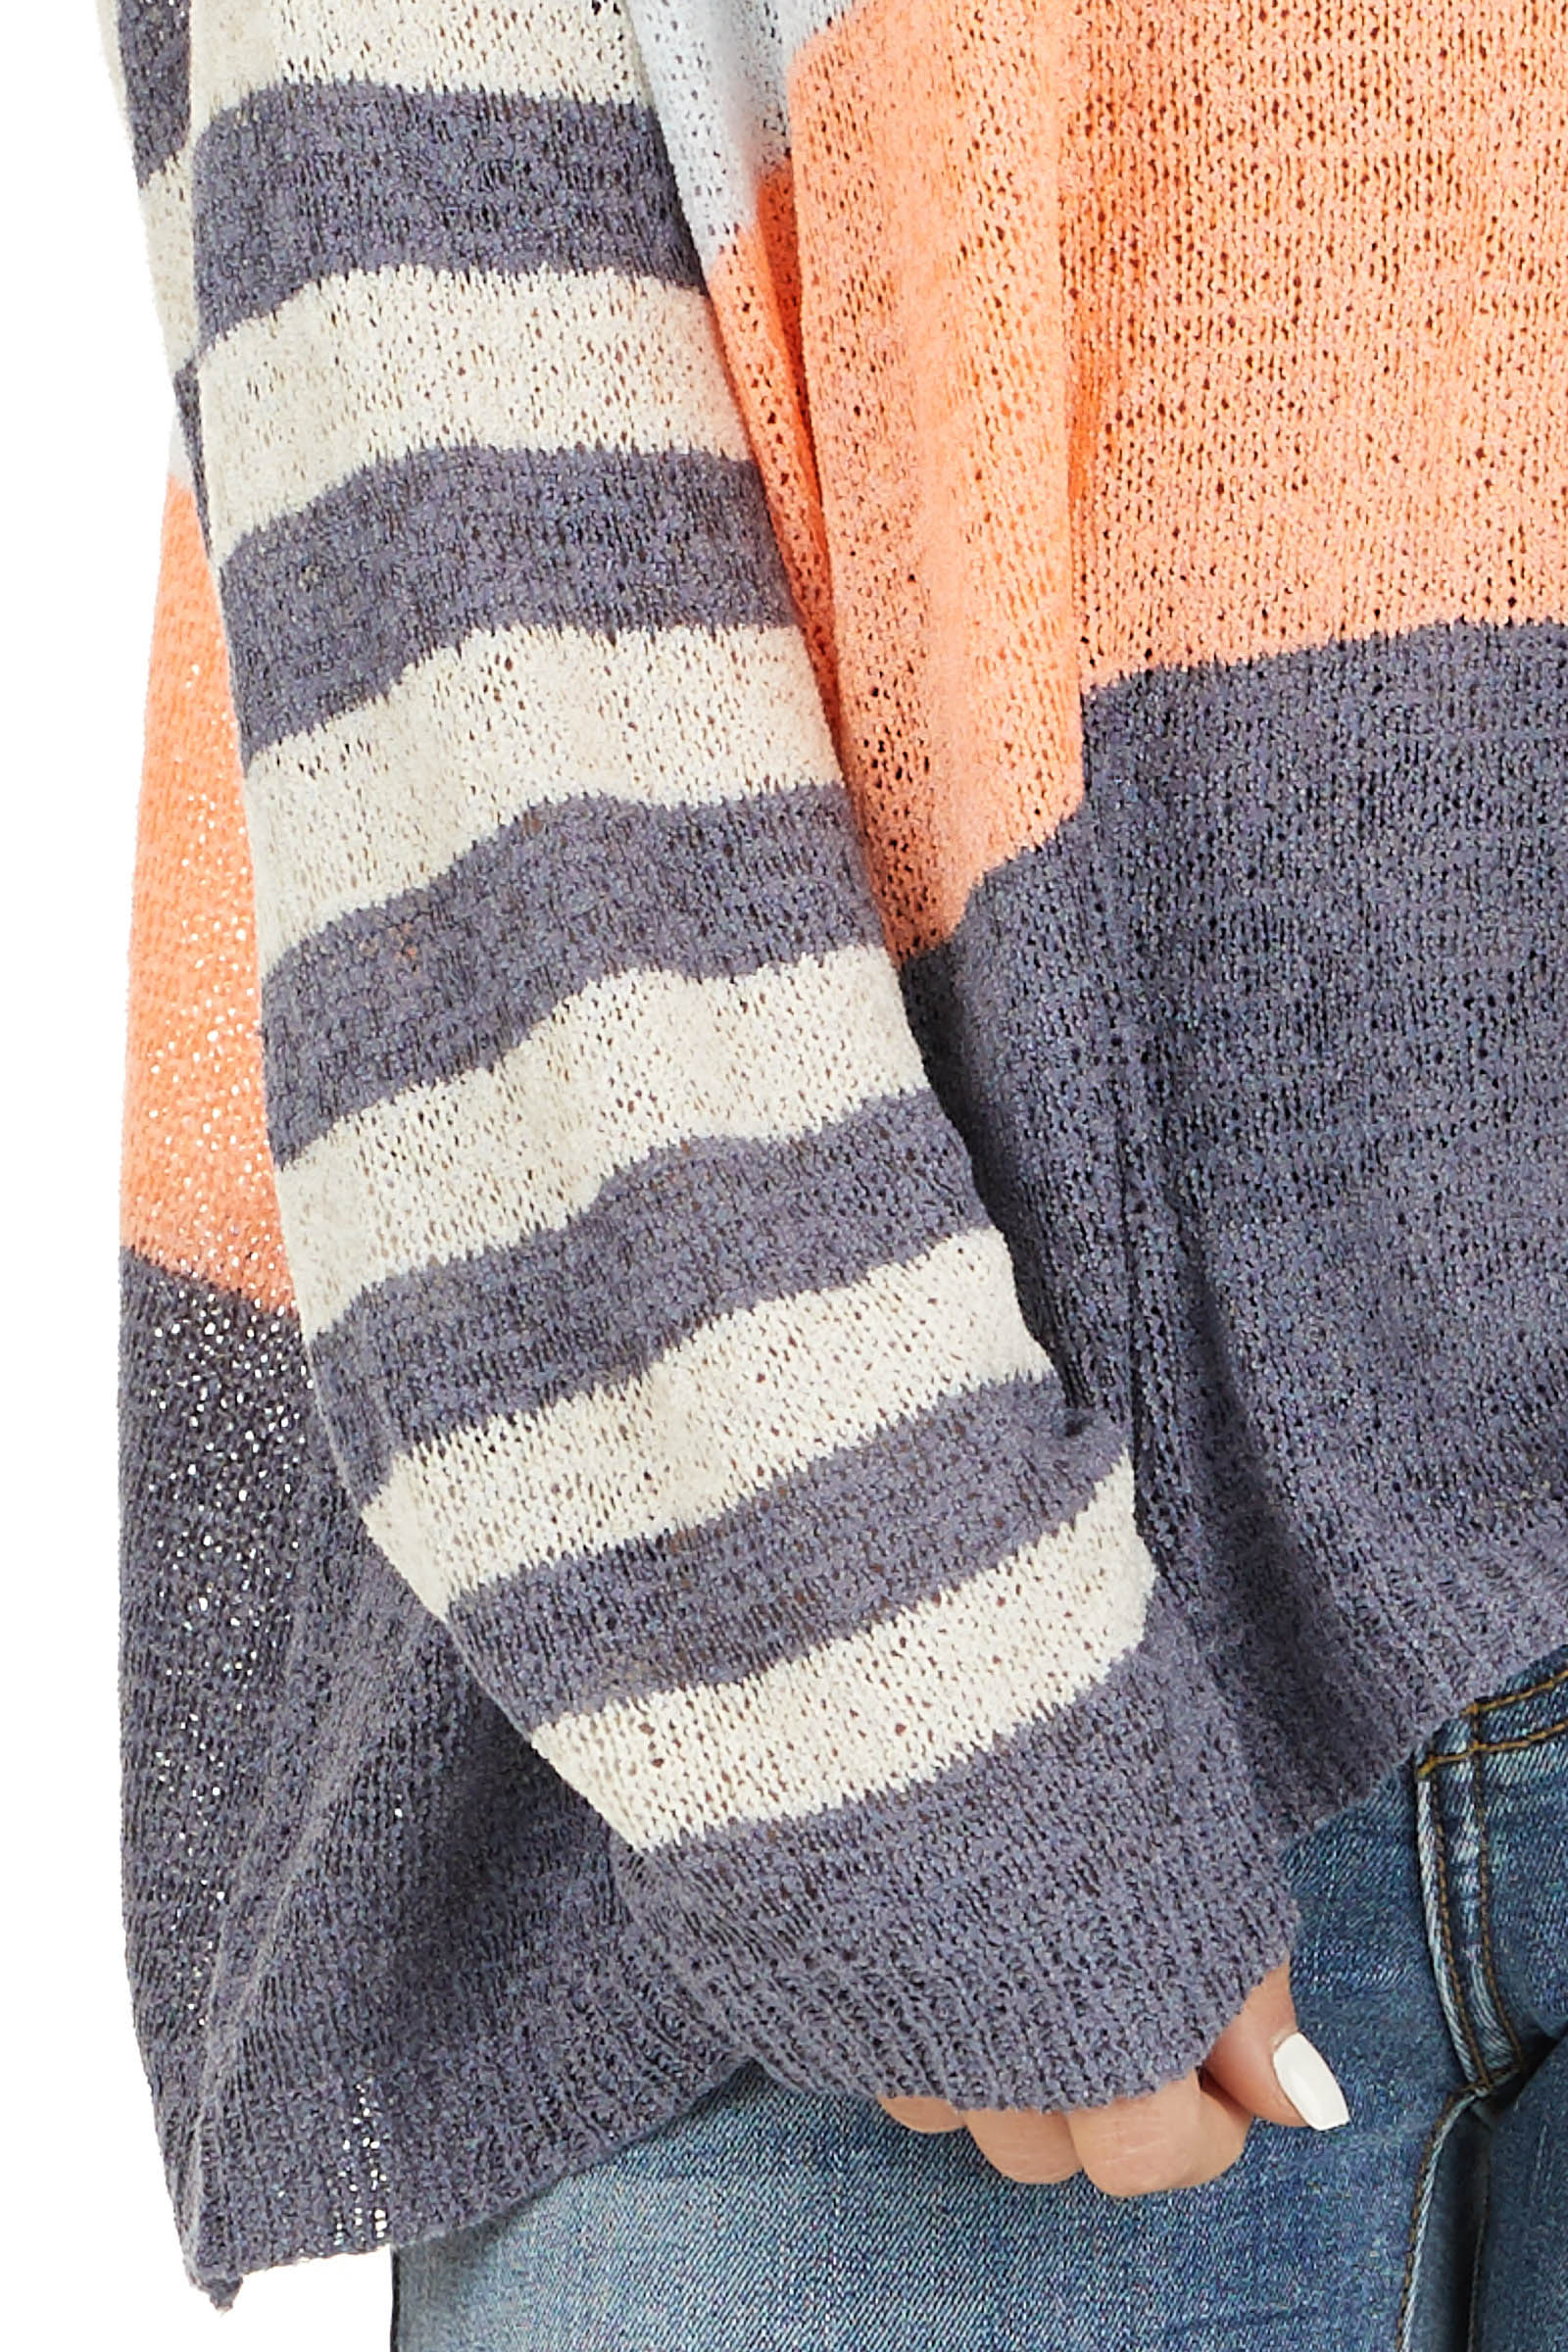 Off White and Slate Blue Color Block Striped Long Sleeve Top detail